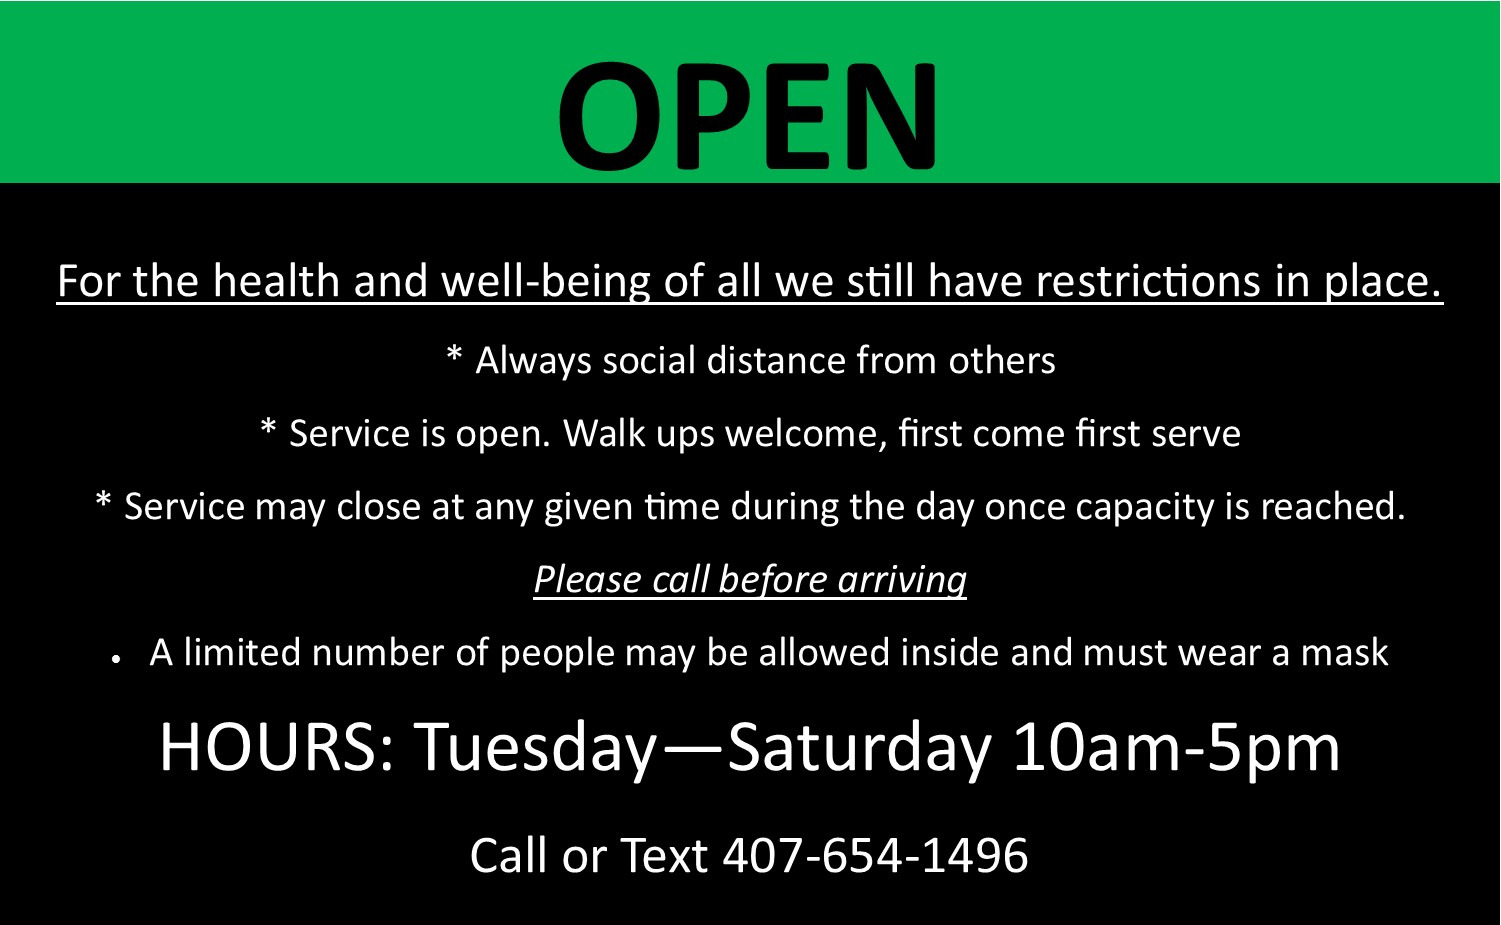 COVID-19 Message - Open With Restrictions - Tuesday-Saturday 10am-5pm